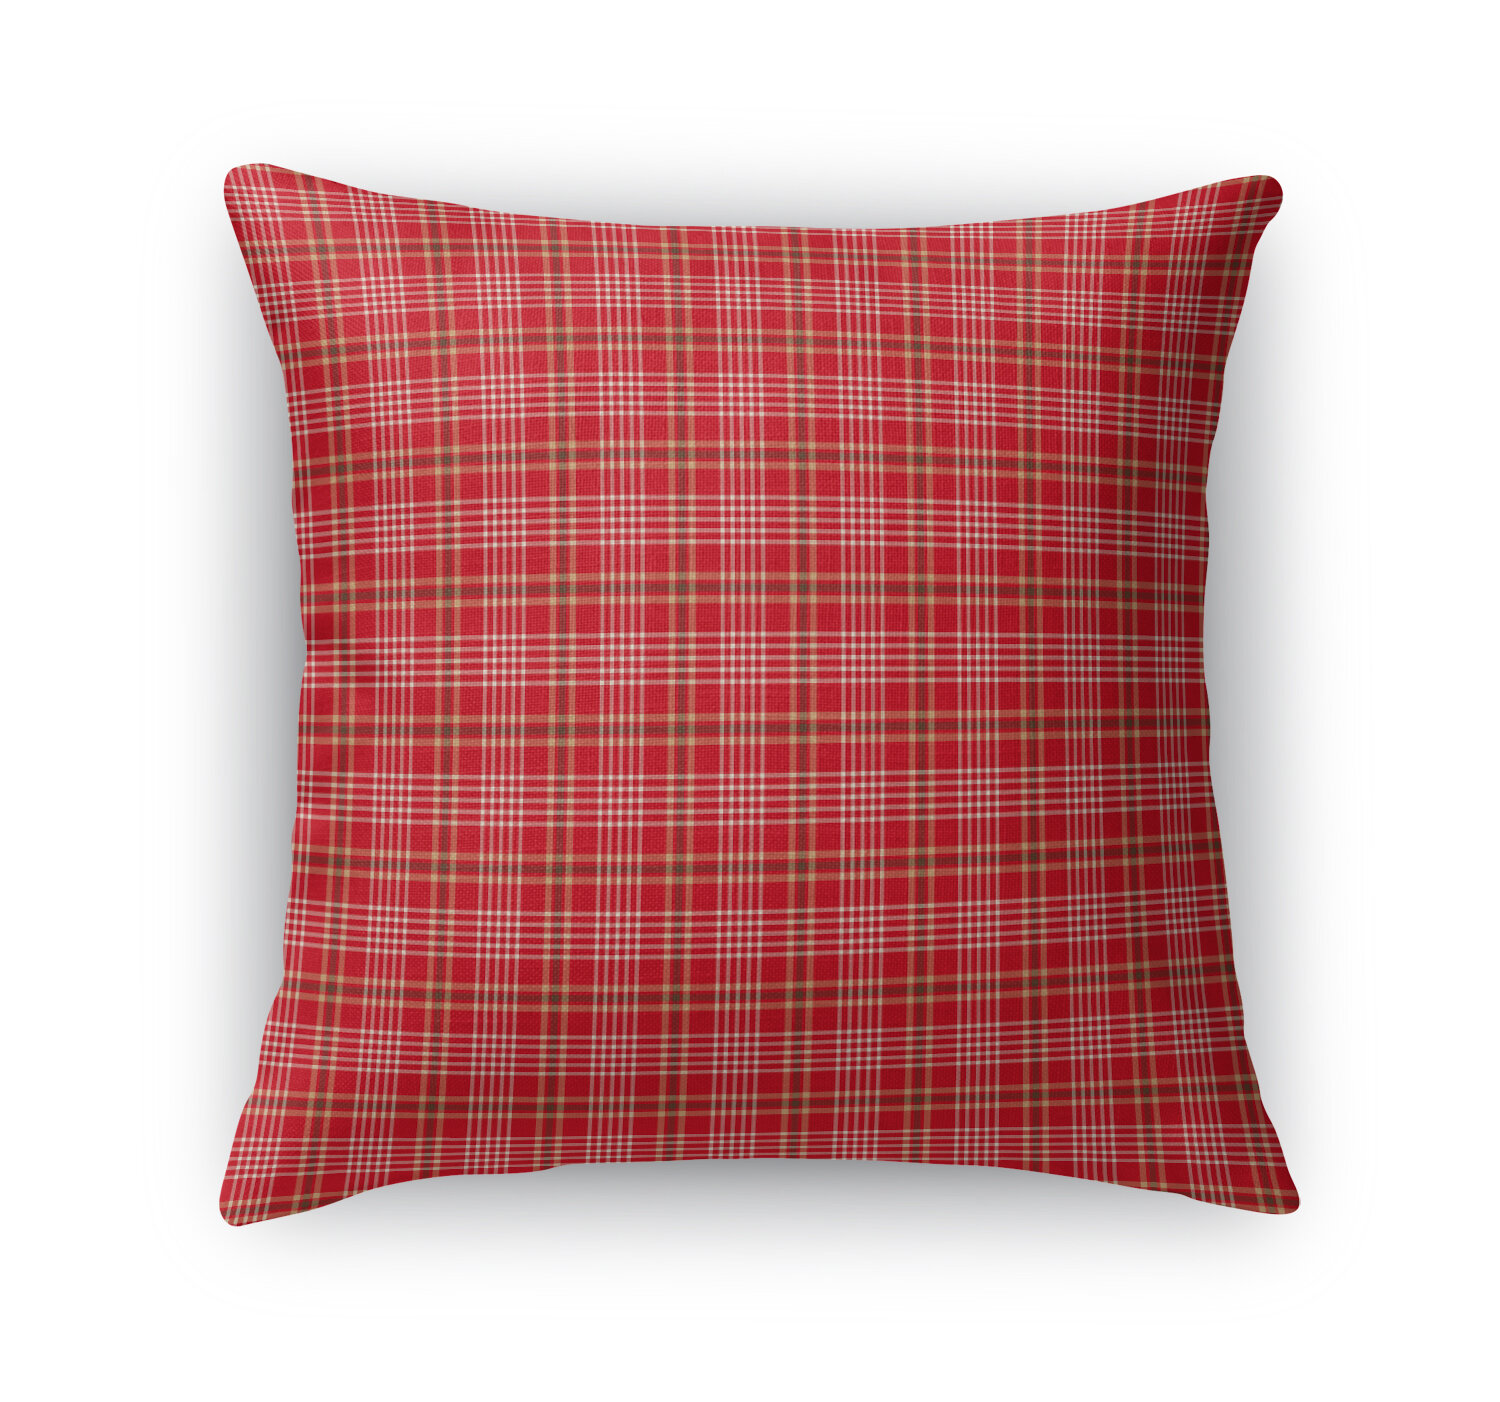 18x24 Check Plaid Throw Pillows You Ll Love In 2021 Wayfair